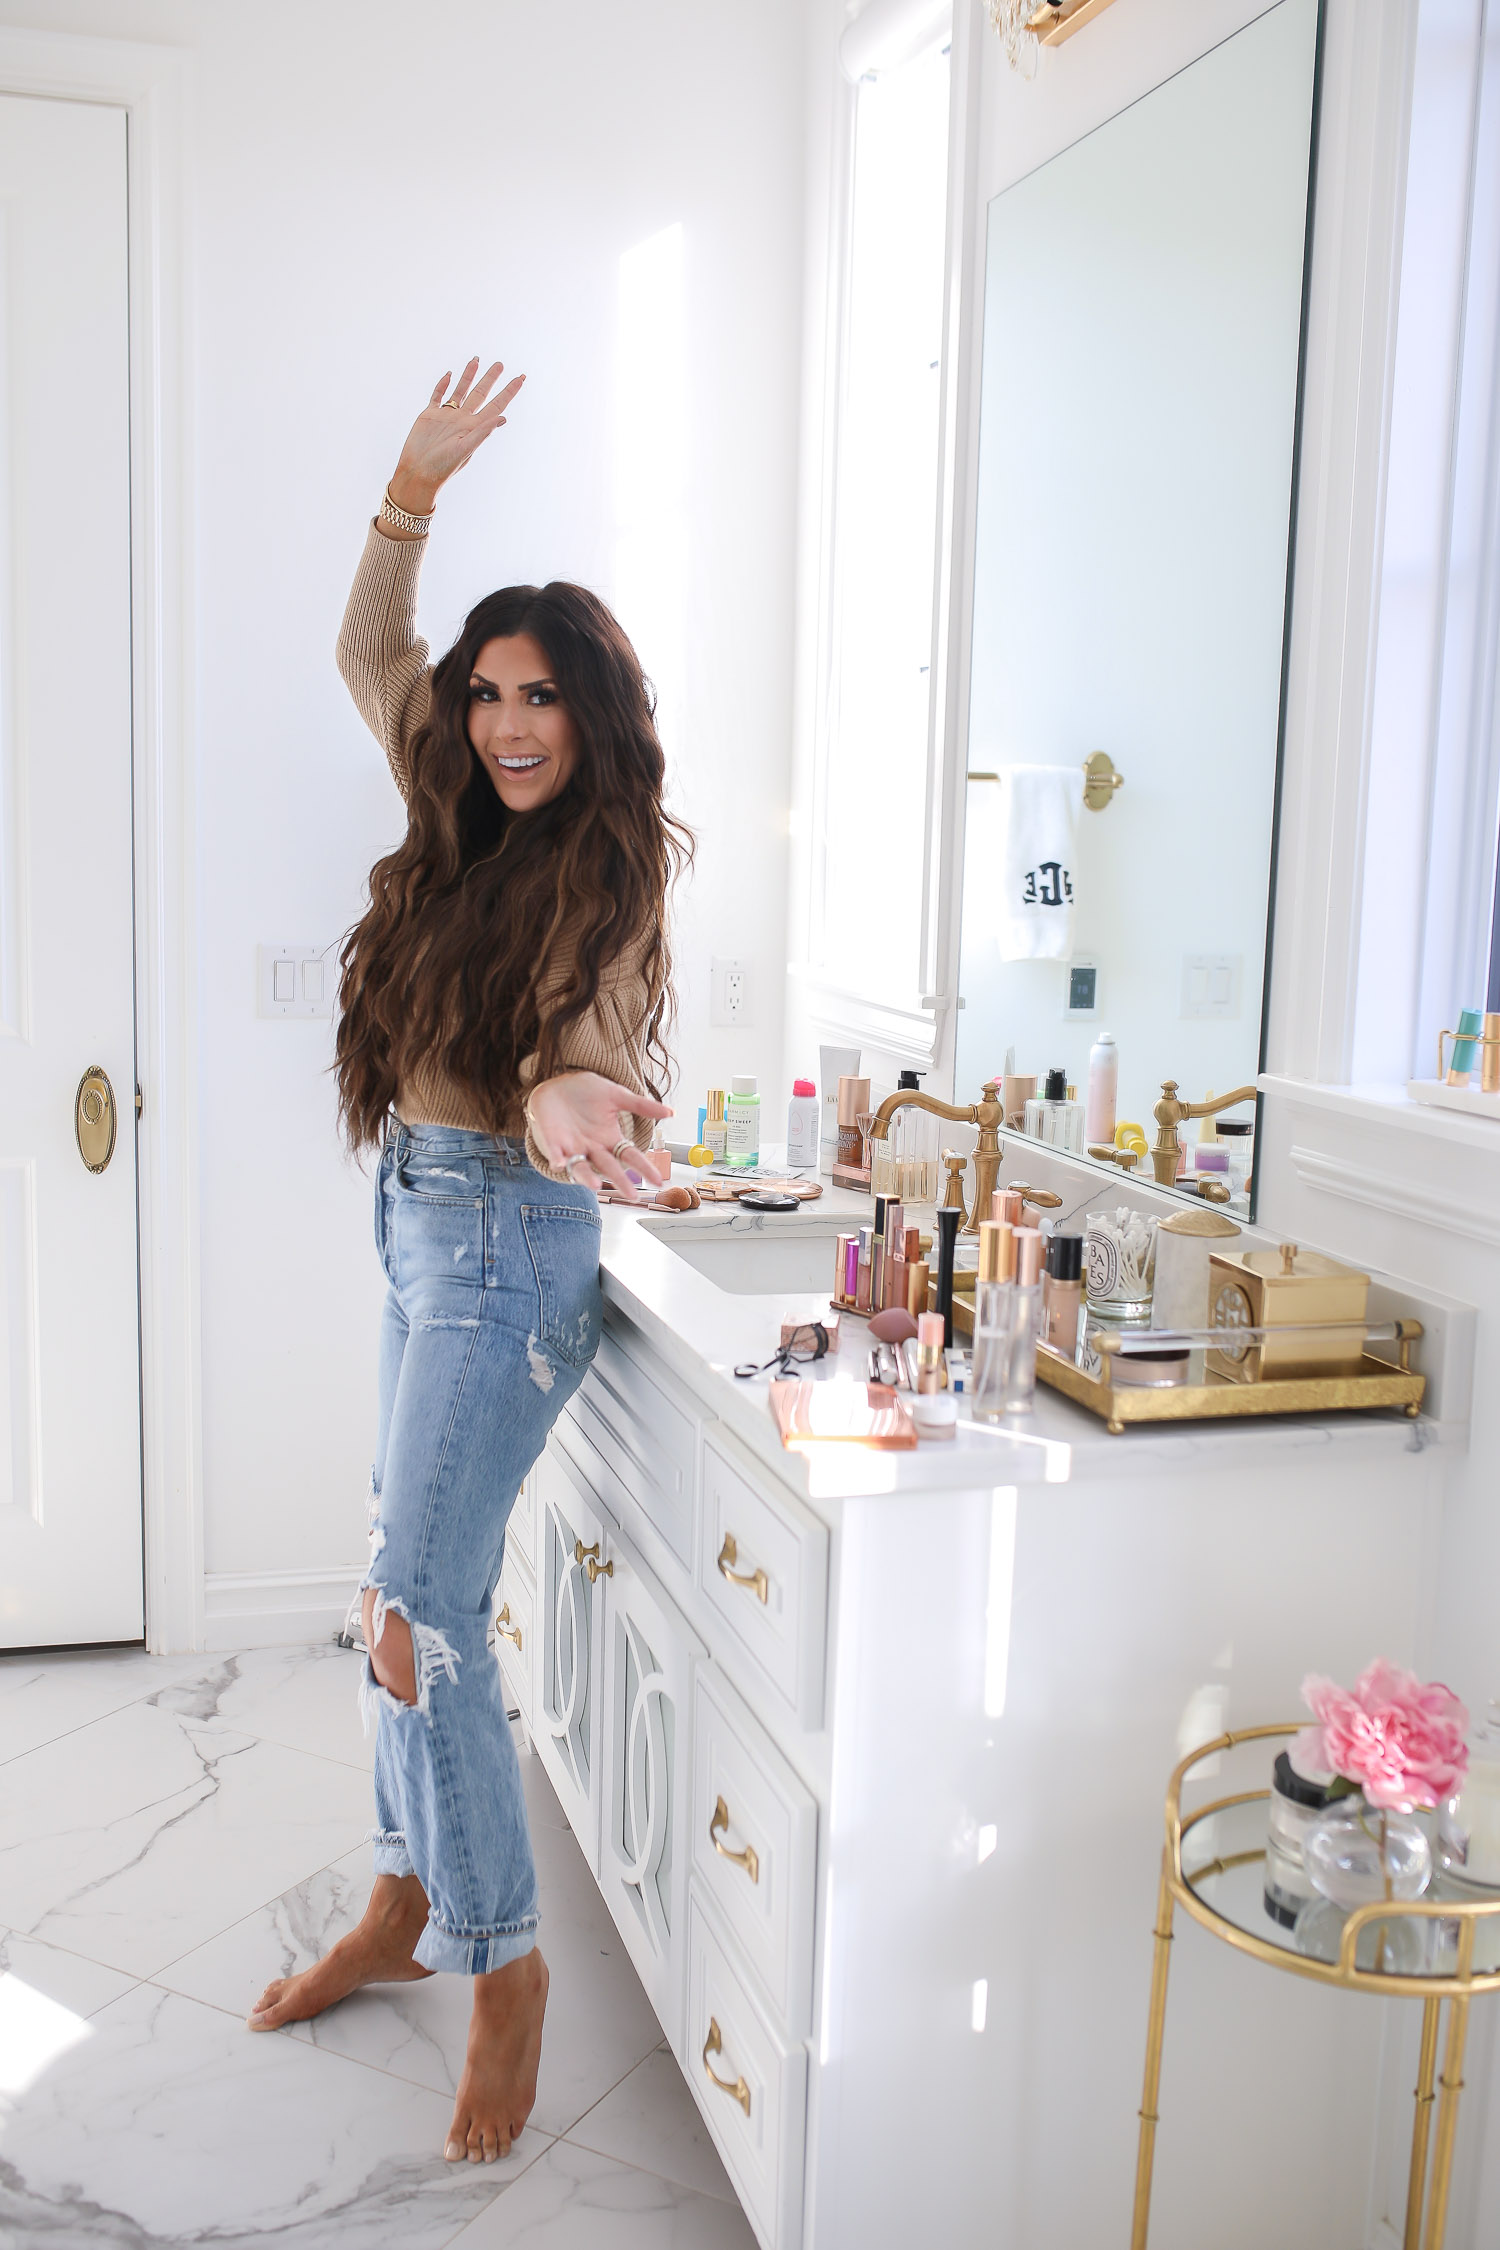 Sephora savings event fall 2020, beauty blogger sephora favorites fall 2020, emily ann gemma |Sephora Beauty Insider Sale by popular US beauty blog, The Sweetest Thing: image of Emily Gemma wearing a puff sleeve turtleneck sweater, Rolex watch, high waist distressed jeans and standing next to her vanity in her bathroom.